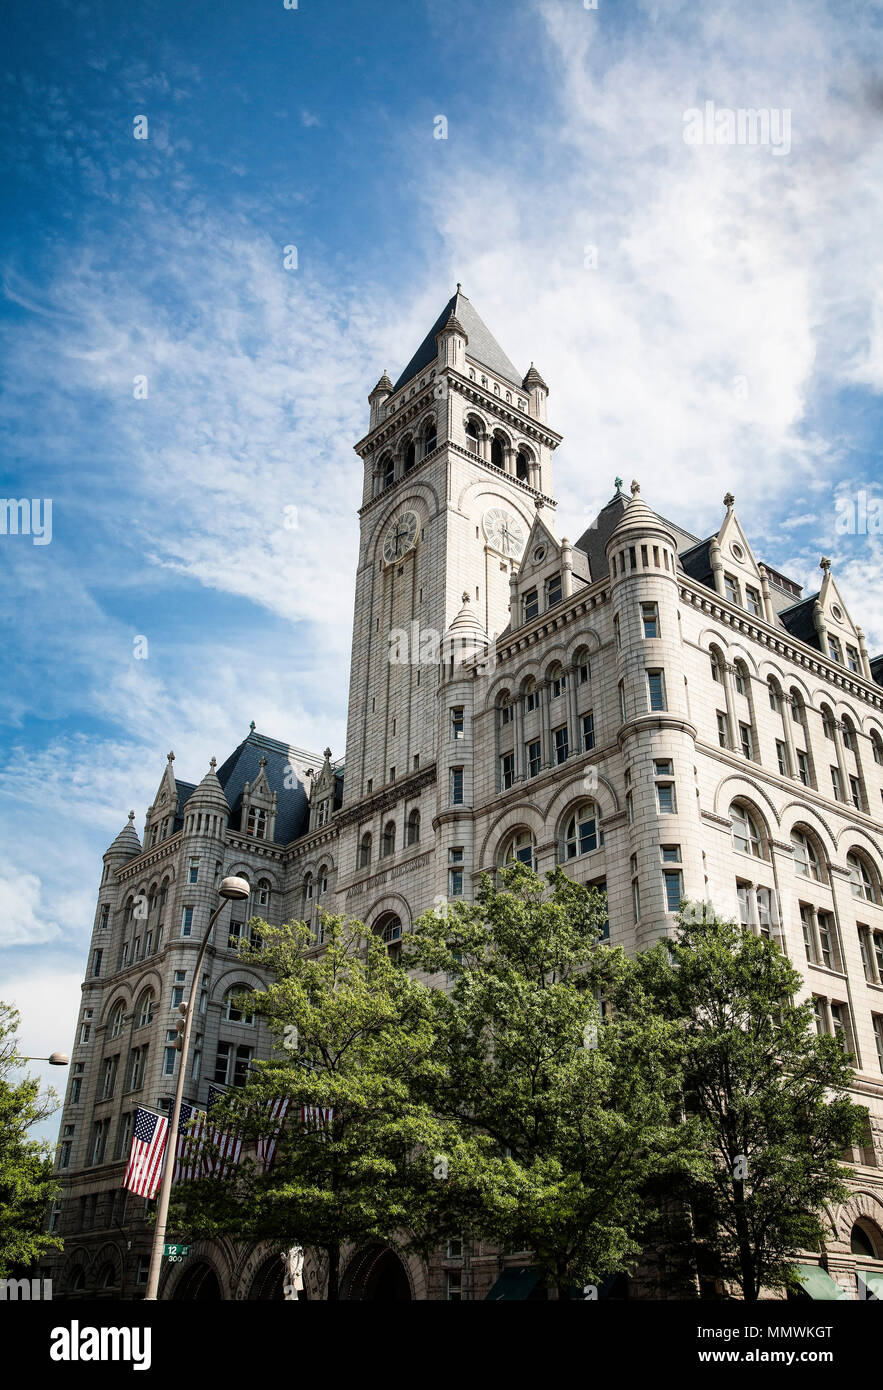 The historical Washington DC post office tower at 1100 Pennsylvania Avenue redeveloped into a luxery Trump International Hotel in 2016. - Stock Image